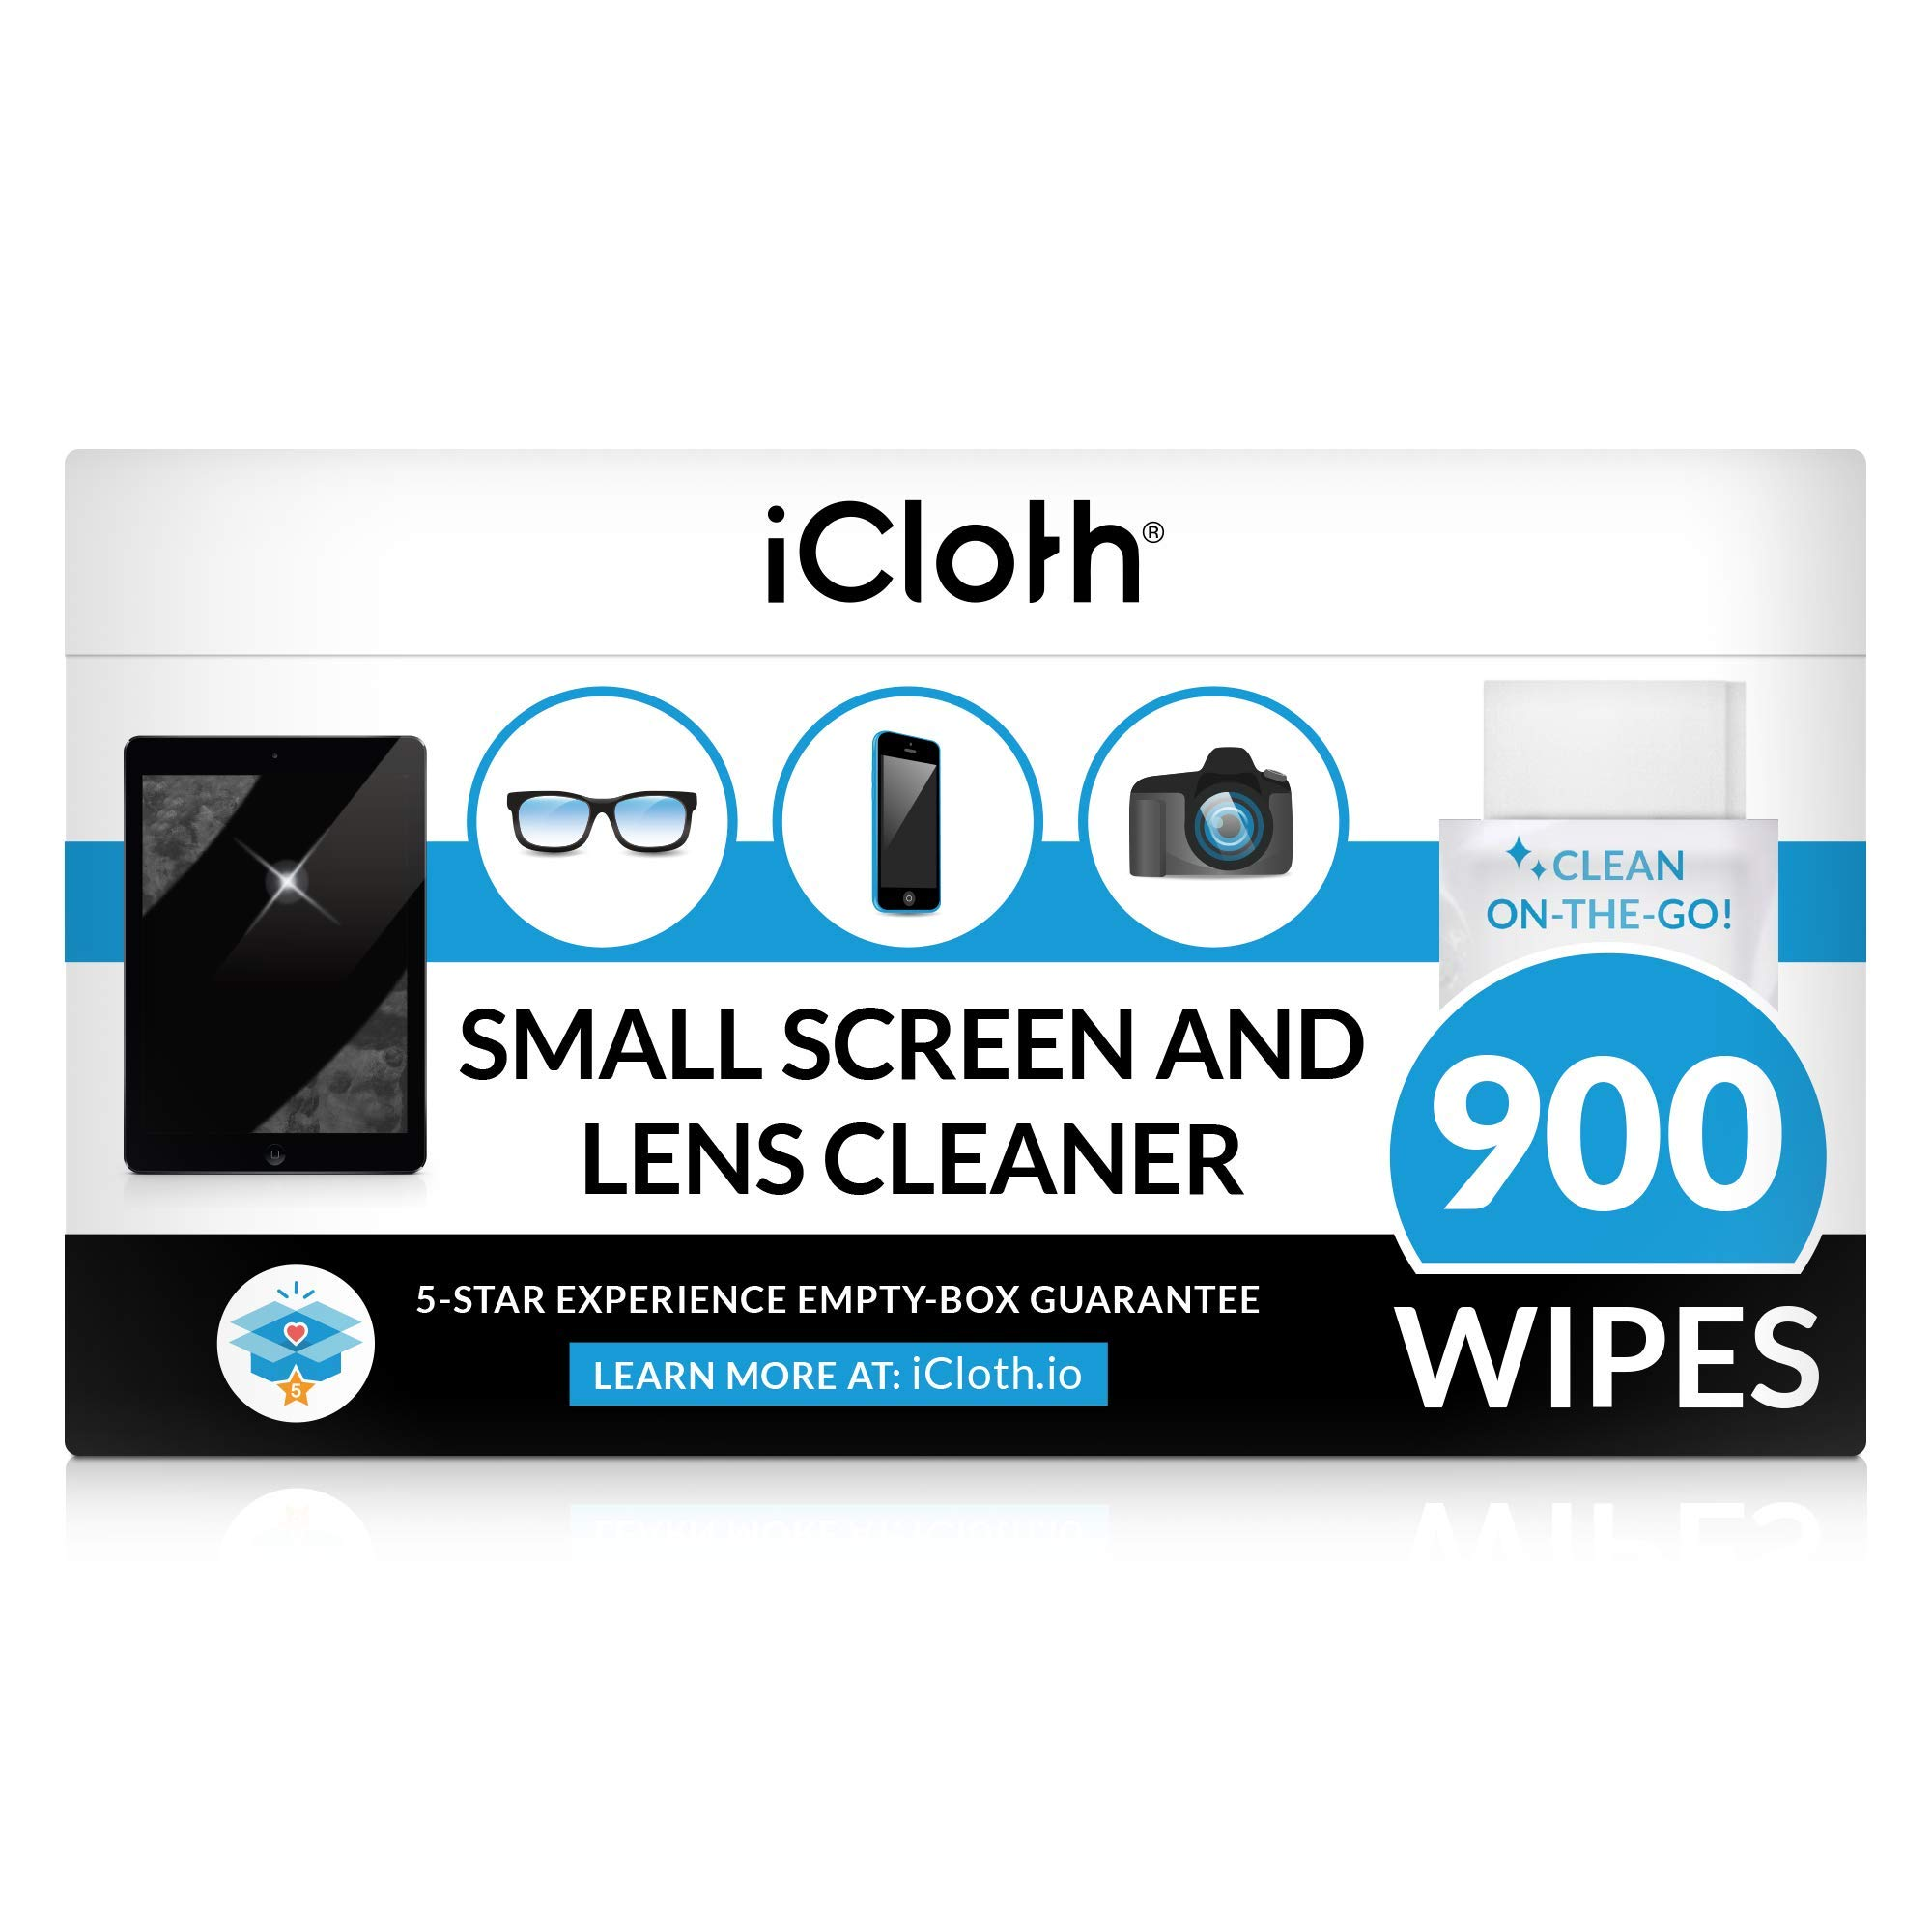 iCloth Lens and Screen Cleaner Pro-Grade Individually Wrapped Wet Wipes, Wipes for Cleaning Small Electronic Devices Like Smartphones and Tablets, Box of 900